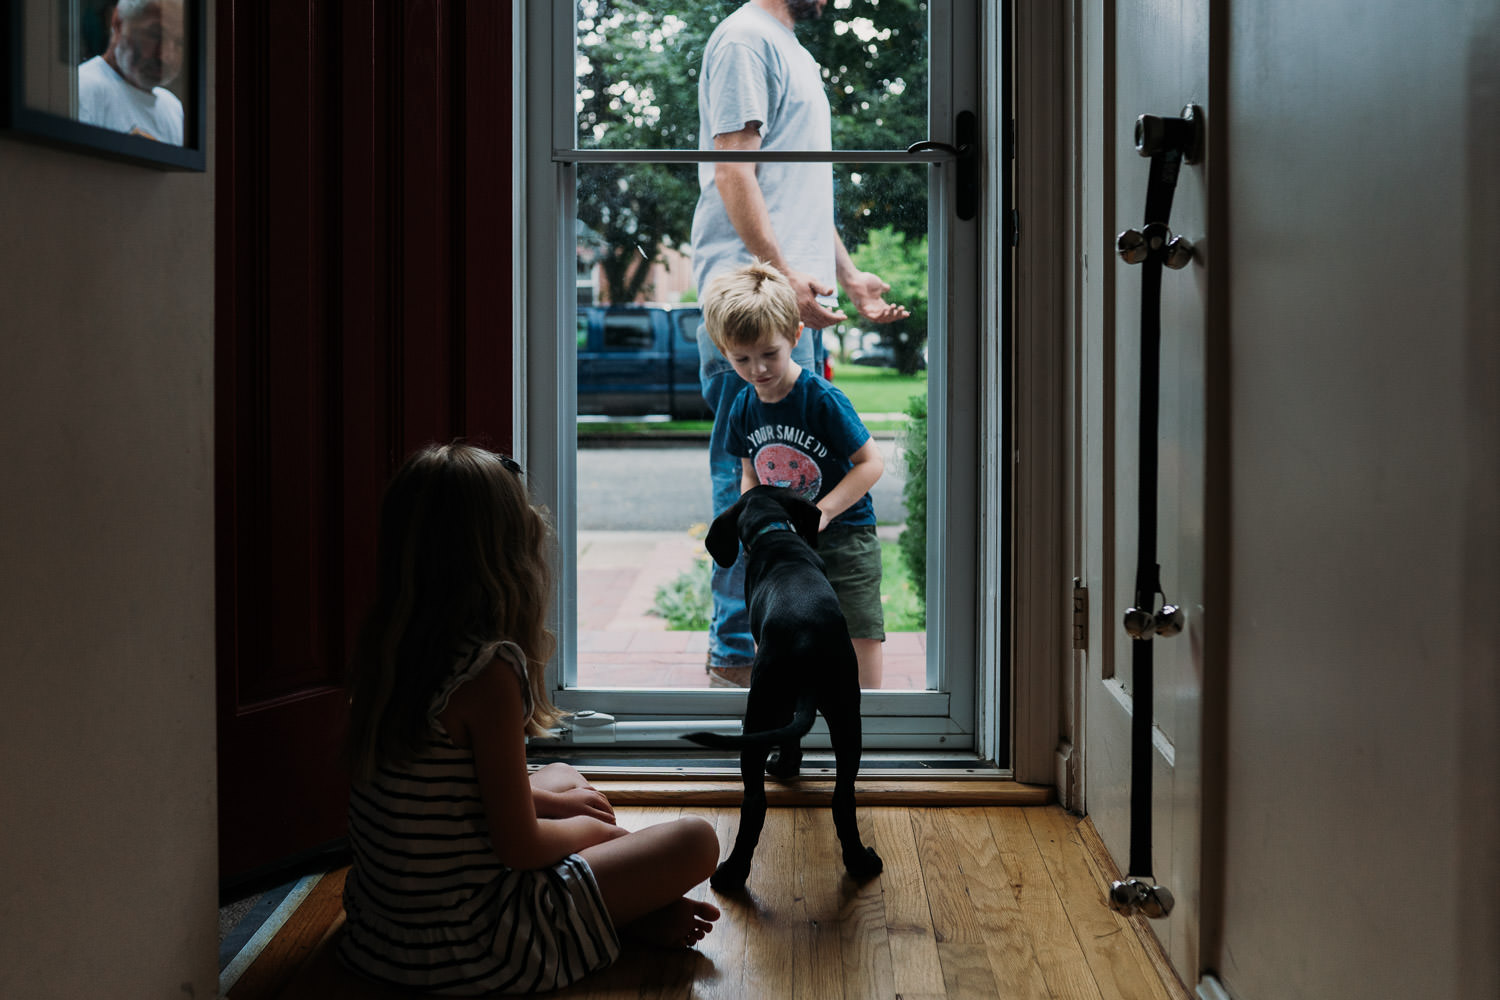 A dog looks at a little boy at the front door.